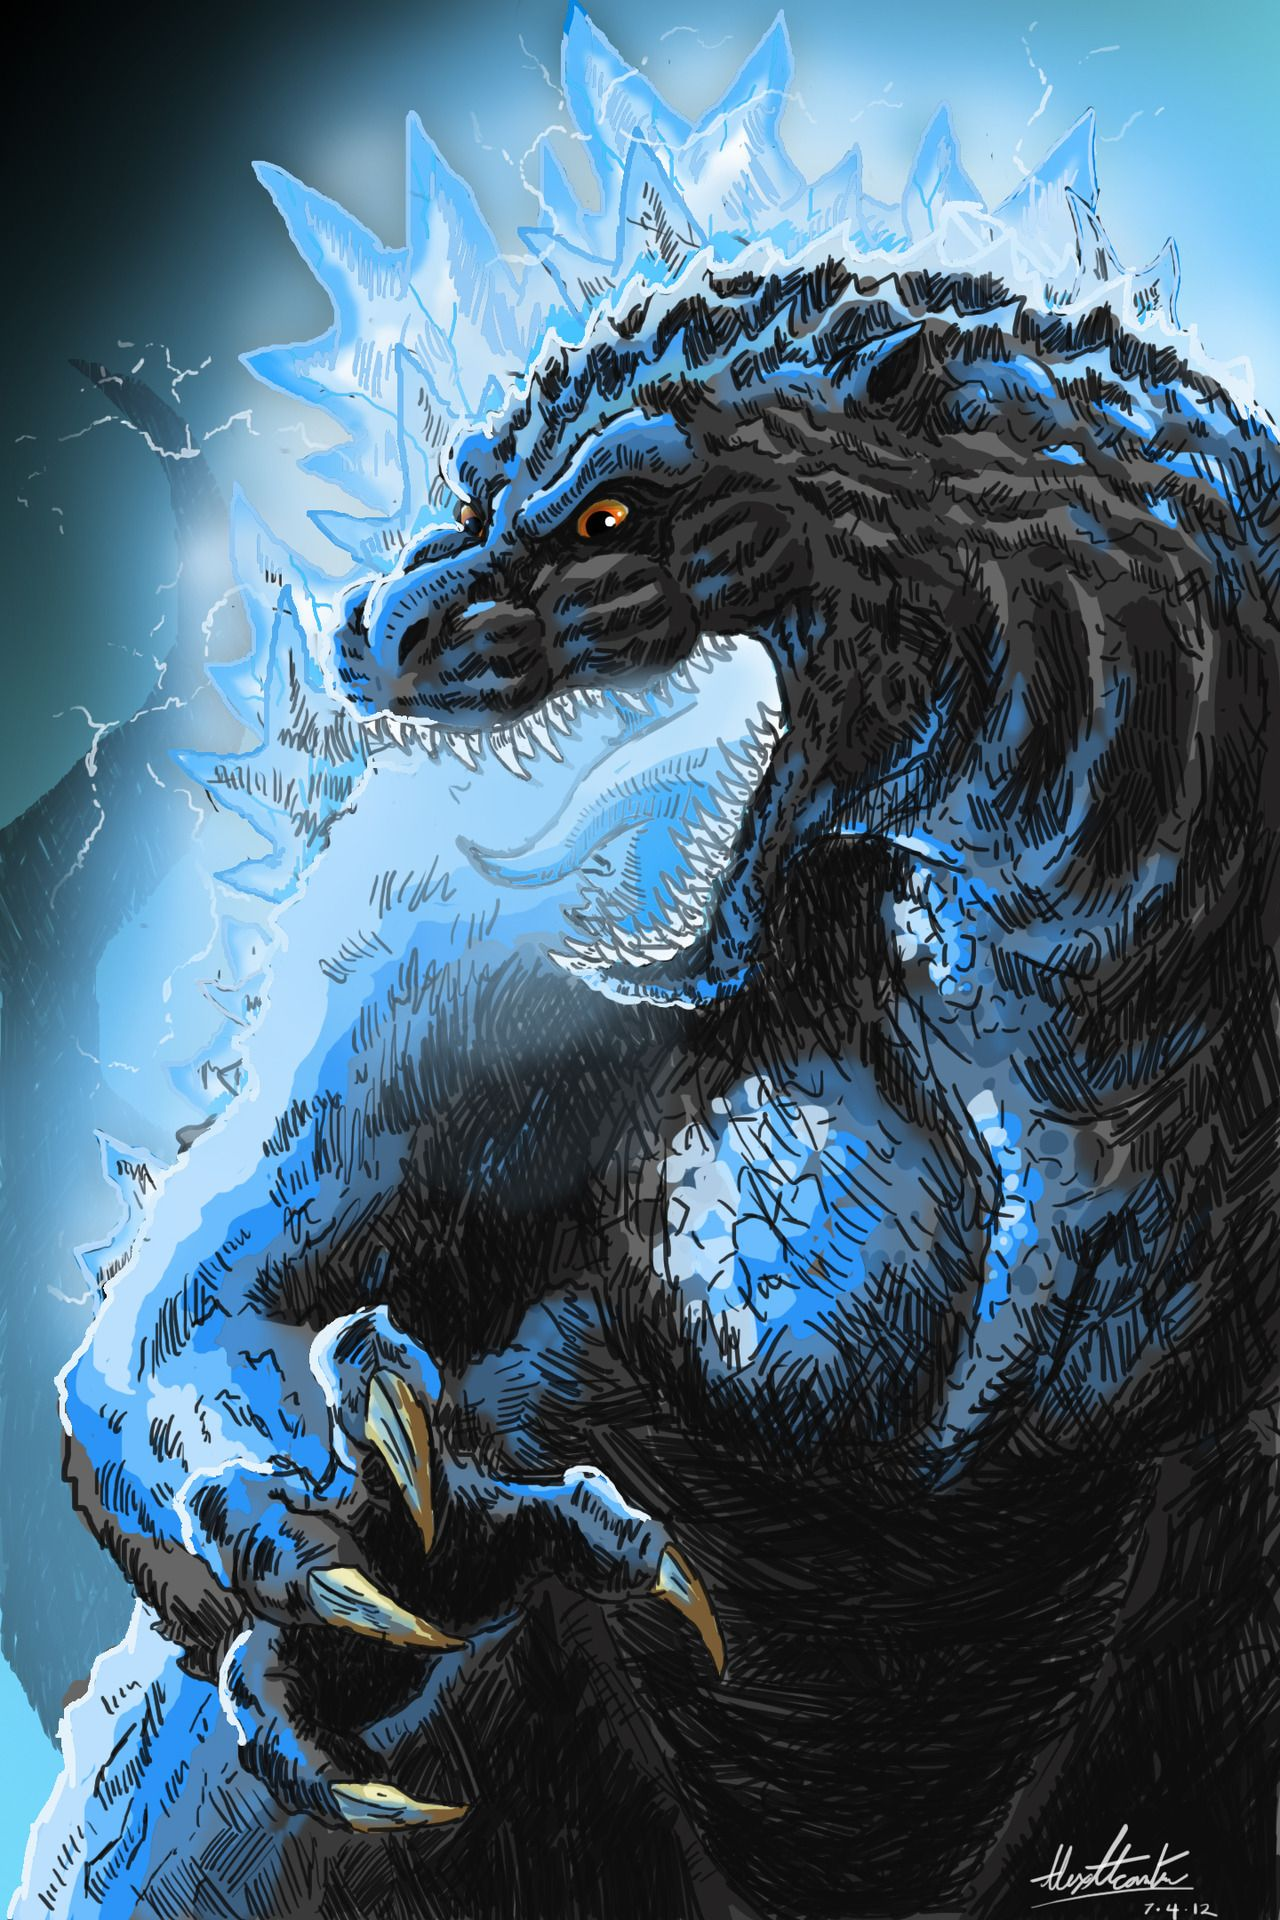 So A While Back I Did Digital Ink Drawing Of Godzilla Returns In Color